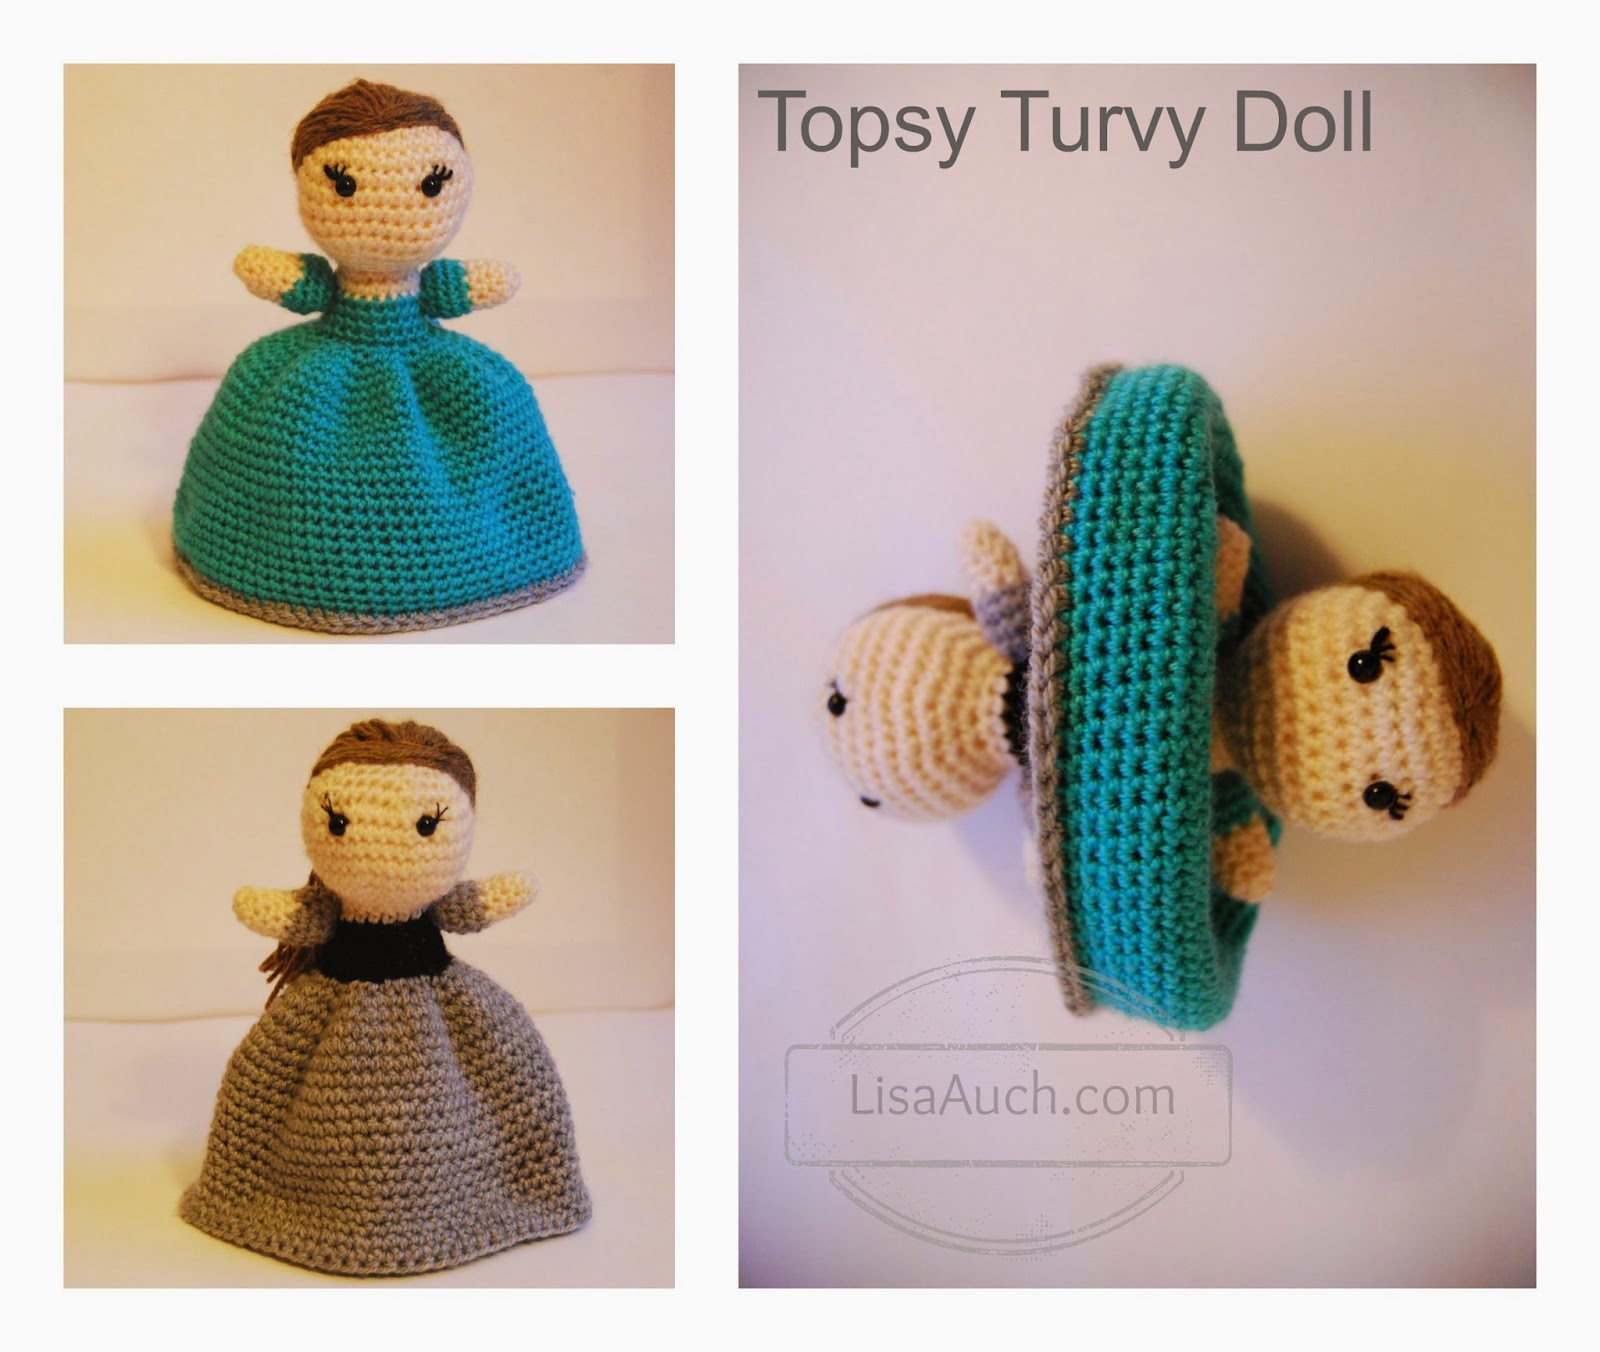 free crochet doll pattern, free crochet doll patterns, free pattern for doll crochet, free crochet patterns